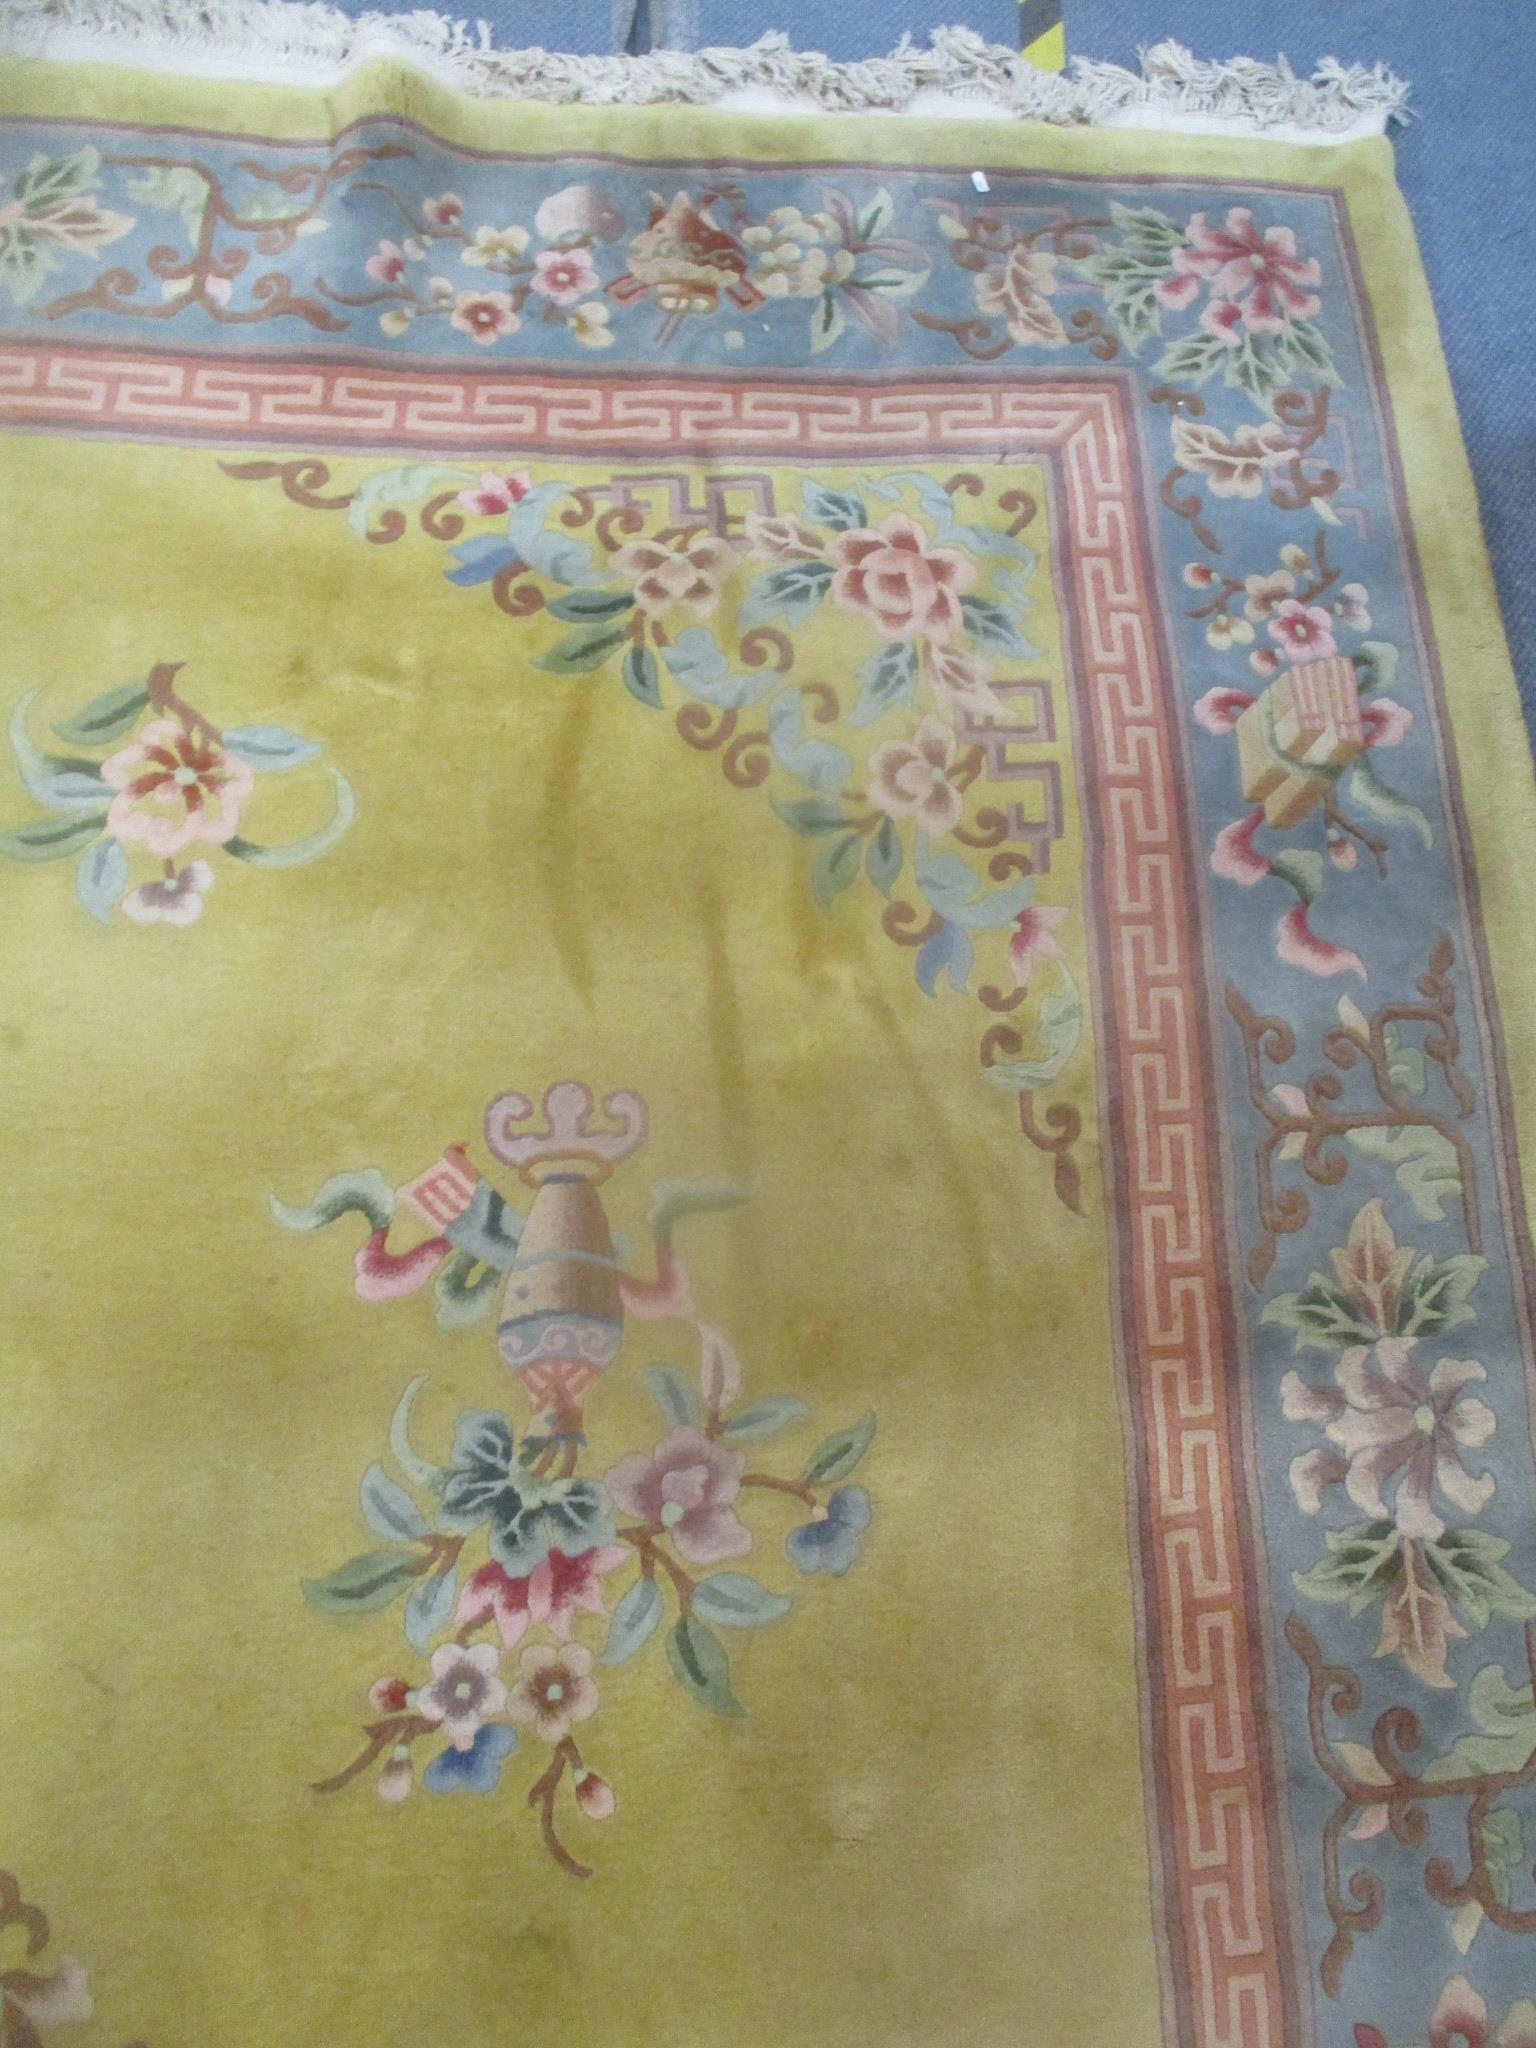 A good quality Chinese rug, bought at Harrods, traditional pattern, central dragon, floral motets - Image 4 of 5